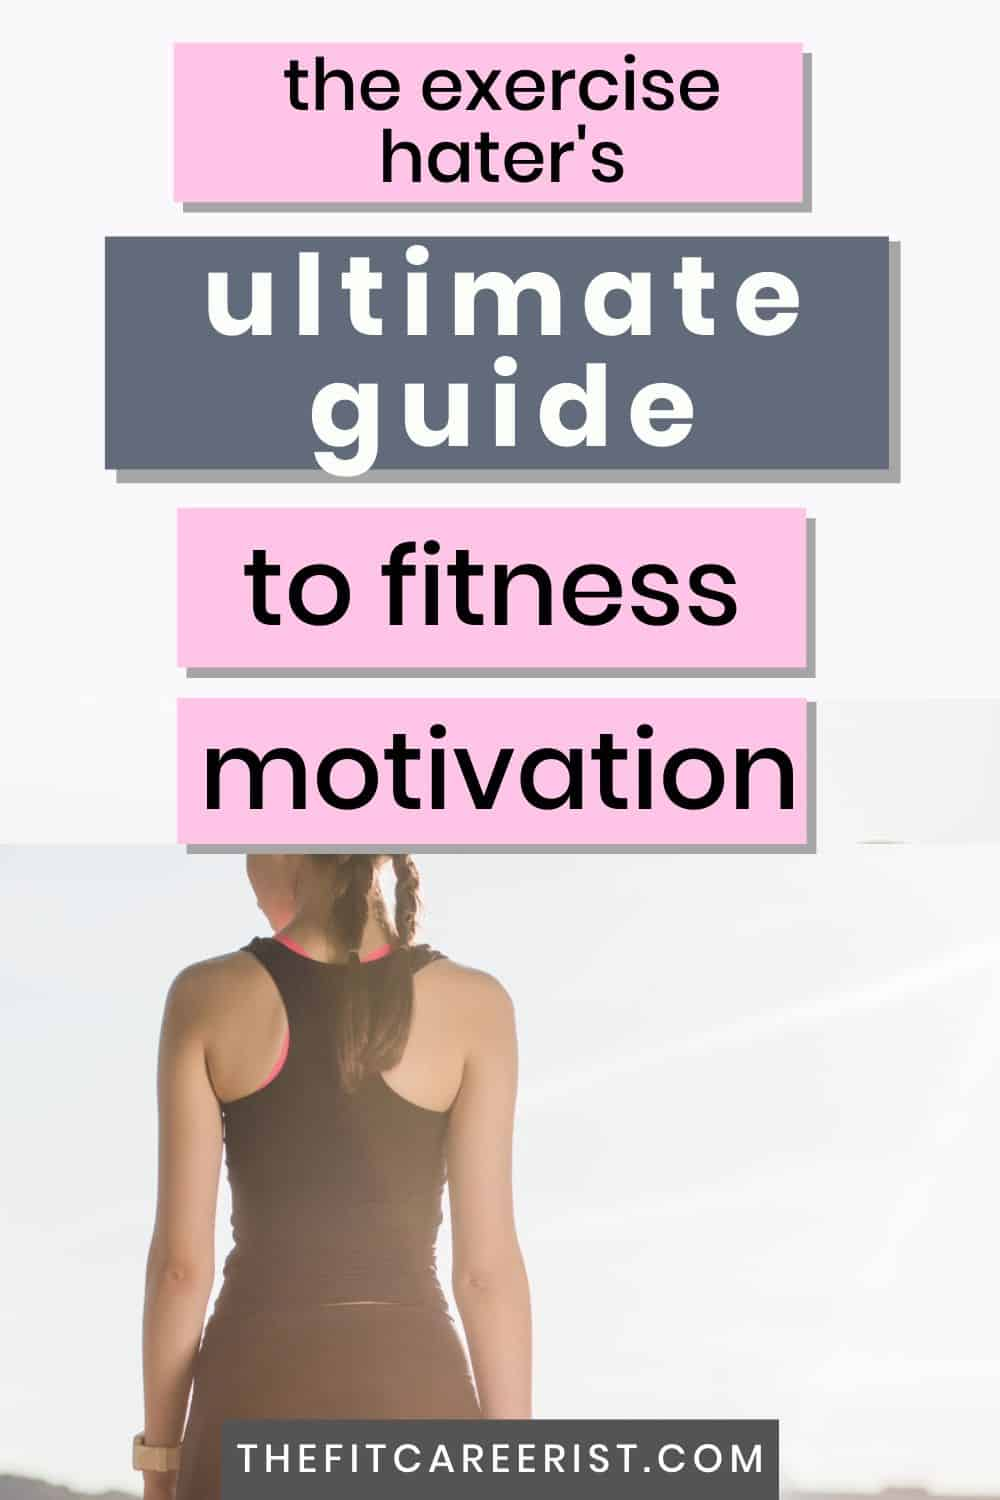 the exercise hater's ultimate guide to fitness motivation